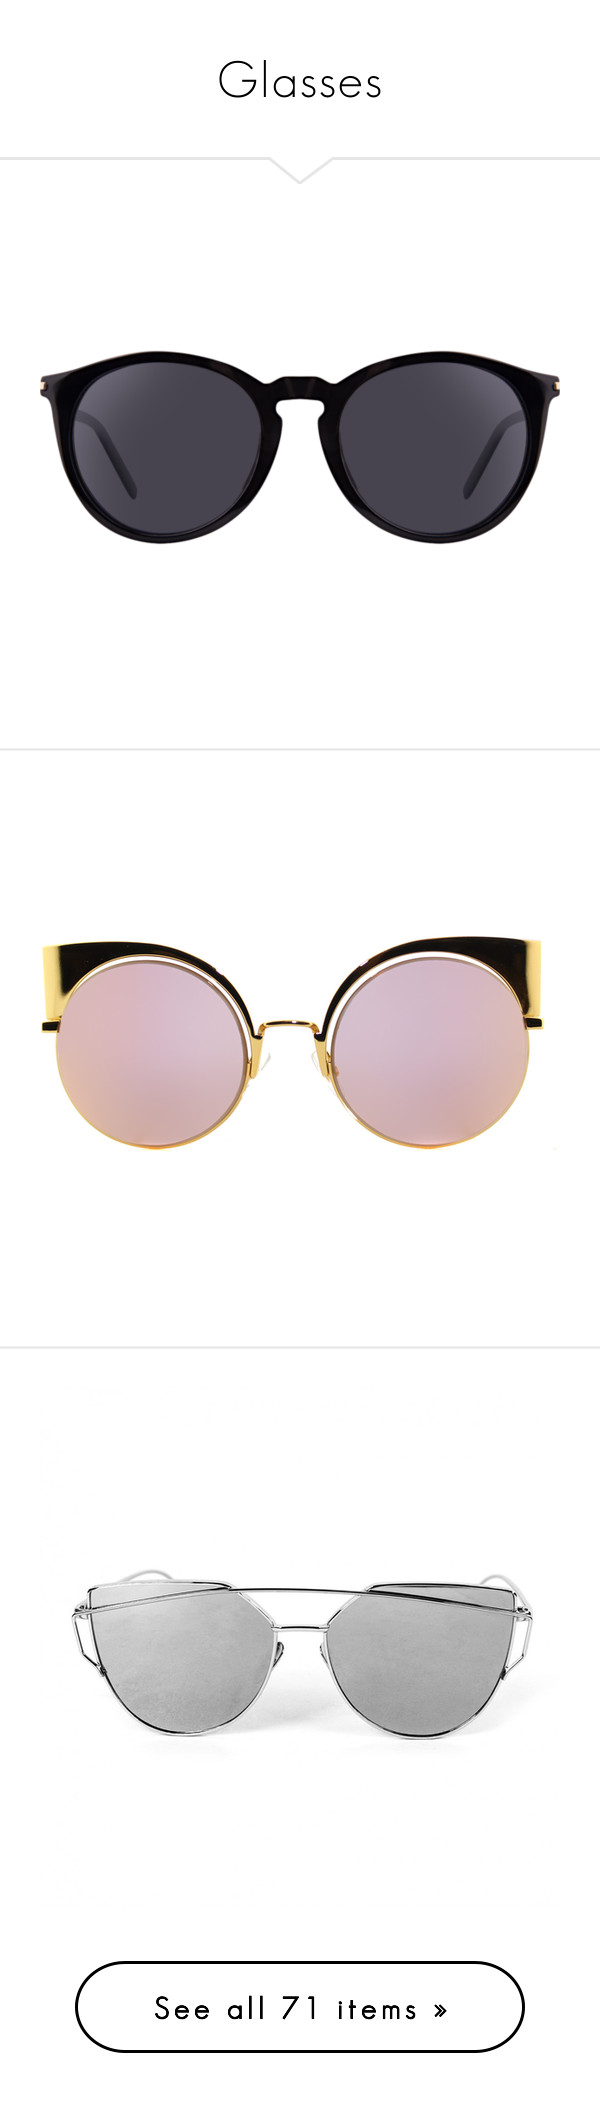 """Glasses"" by qwerty-16-polyvore ❤ liked on Polyvore featuring accessories, eyewear, sunglasses, glasses, black, yves saint laurent eyewear, yves saint laurent glasses, oval sunglasses, yves saint laurent sunglasses and lens glasses"